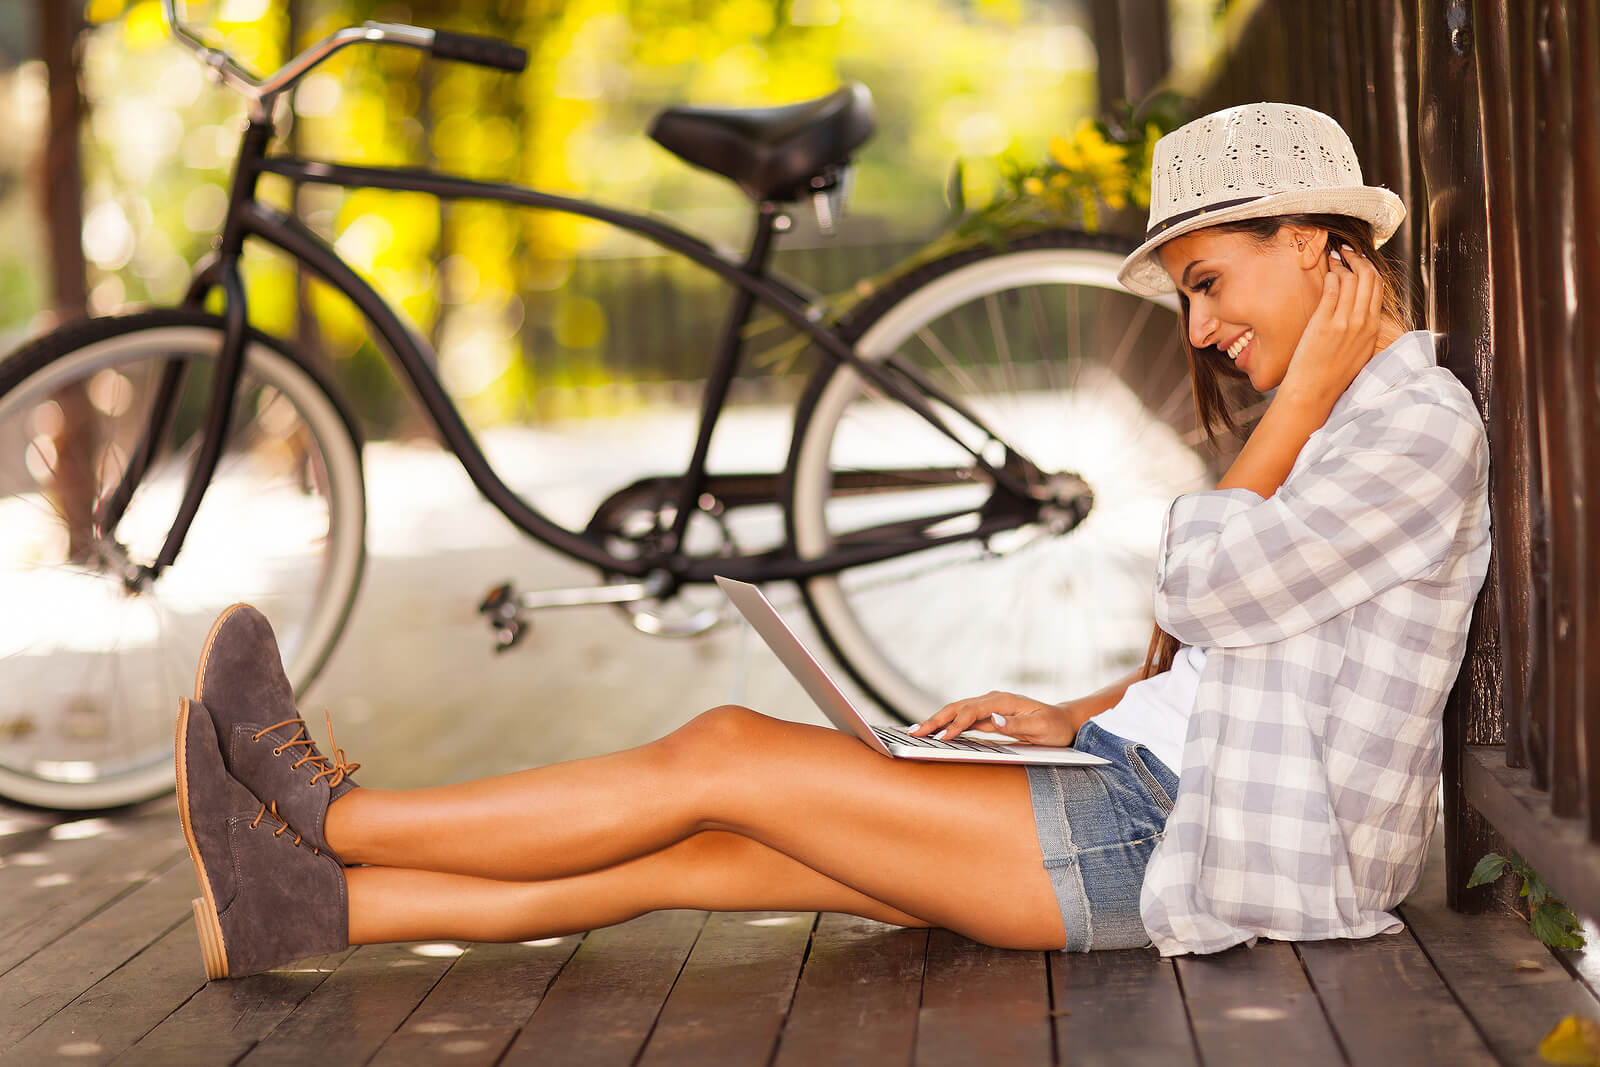 Image showing cheerful young woman browsing internet on her laptop outdoor